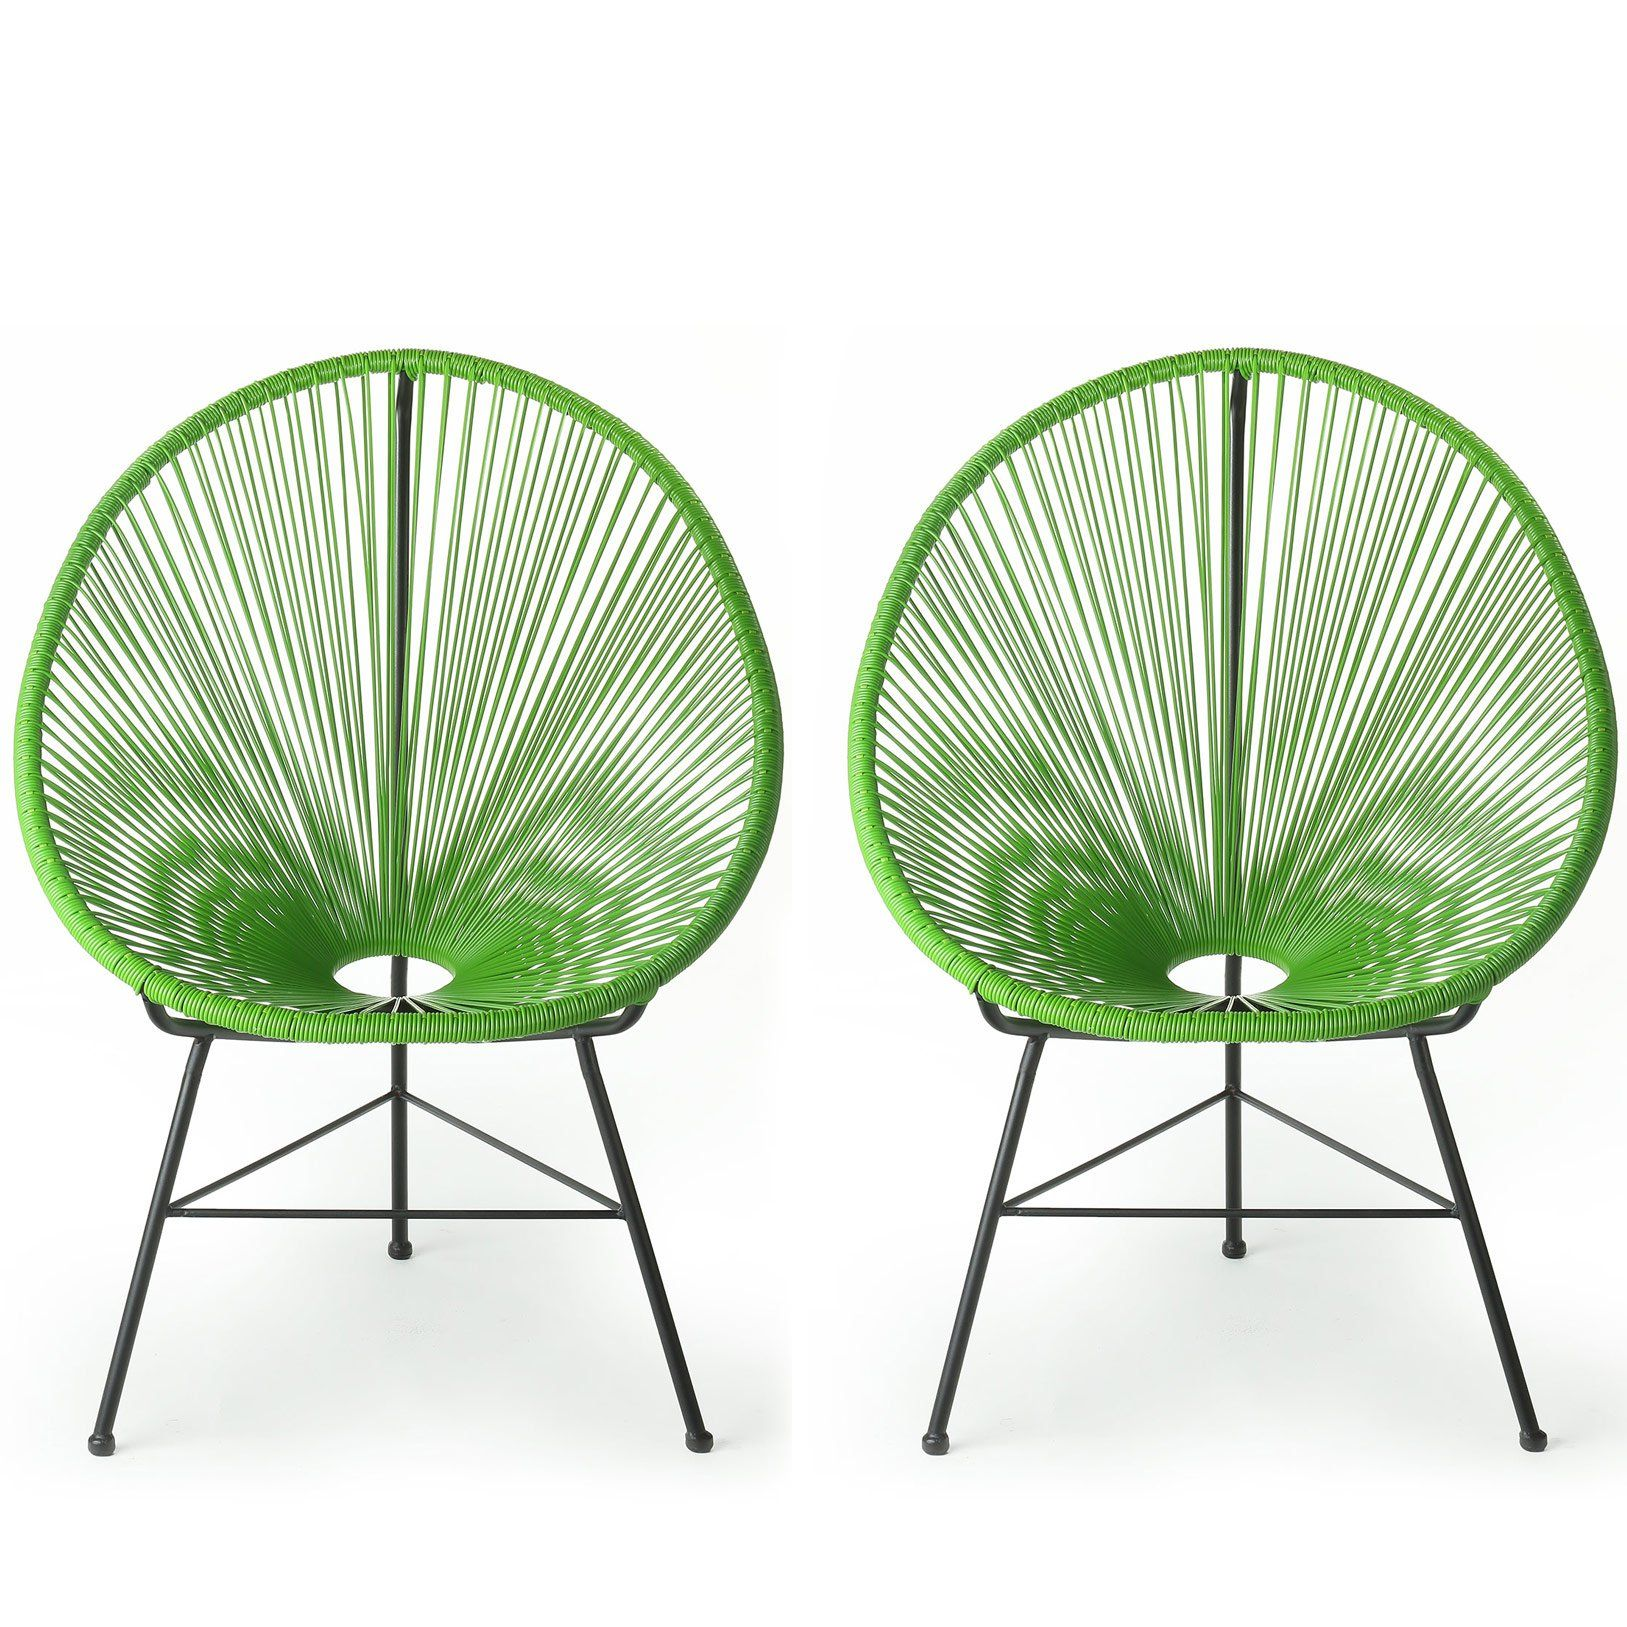 Acapulco chair cb2 - Acapulco Lounge Chair Green Set Of 2 Set Of 2 Chairs Durable